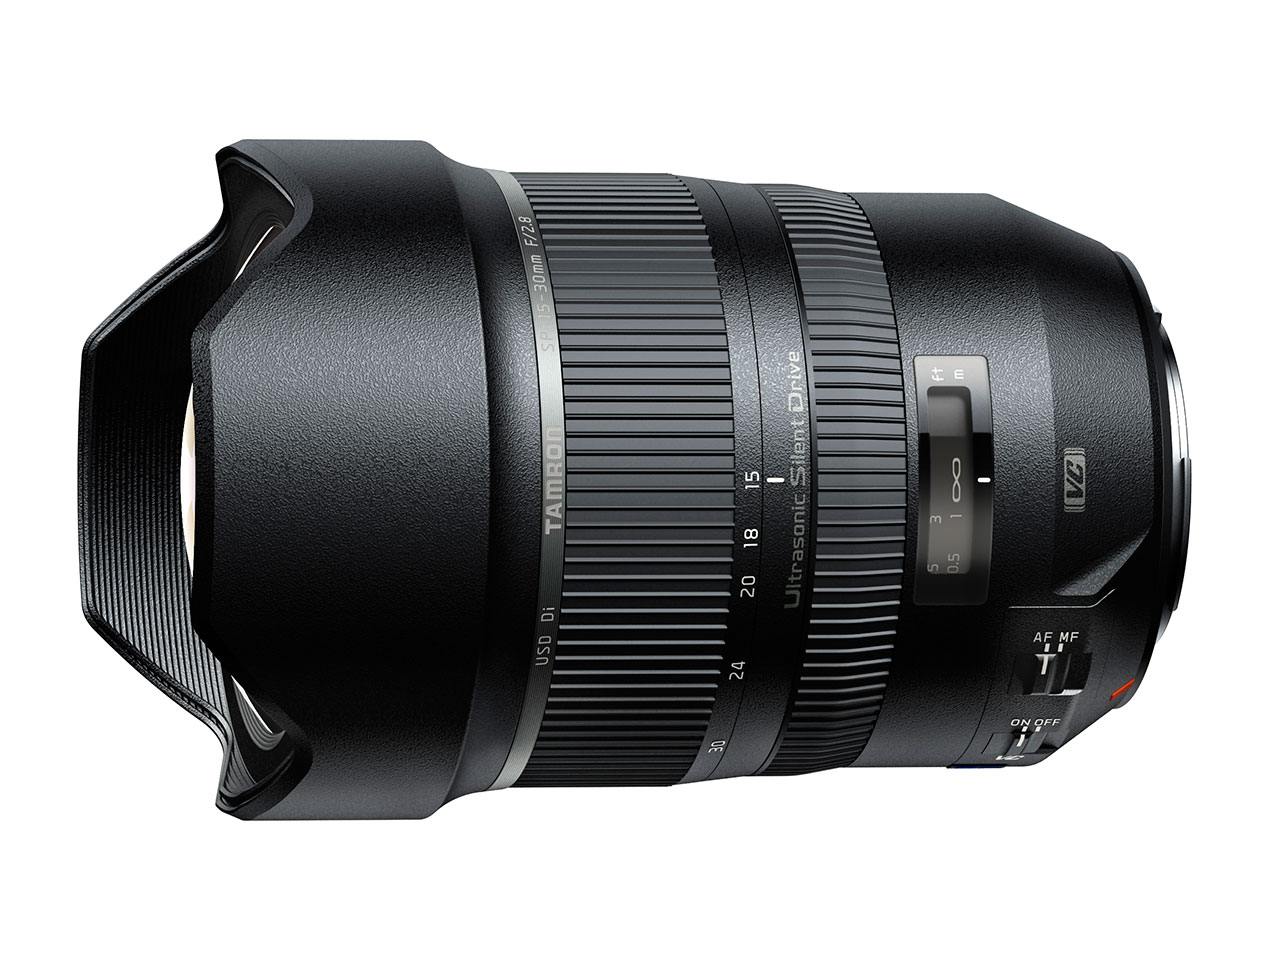 Tamron develops full-frame 15-30 f/2.8 ultra-wide zoom with ...